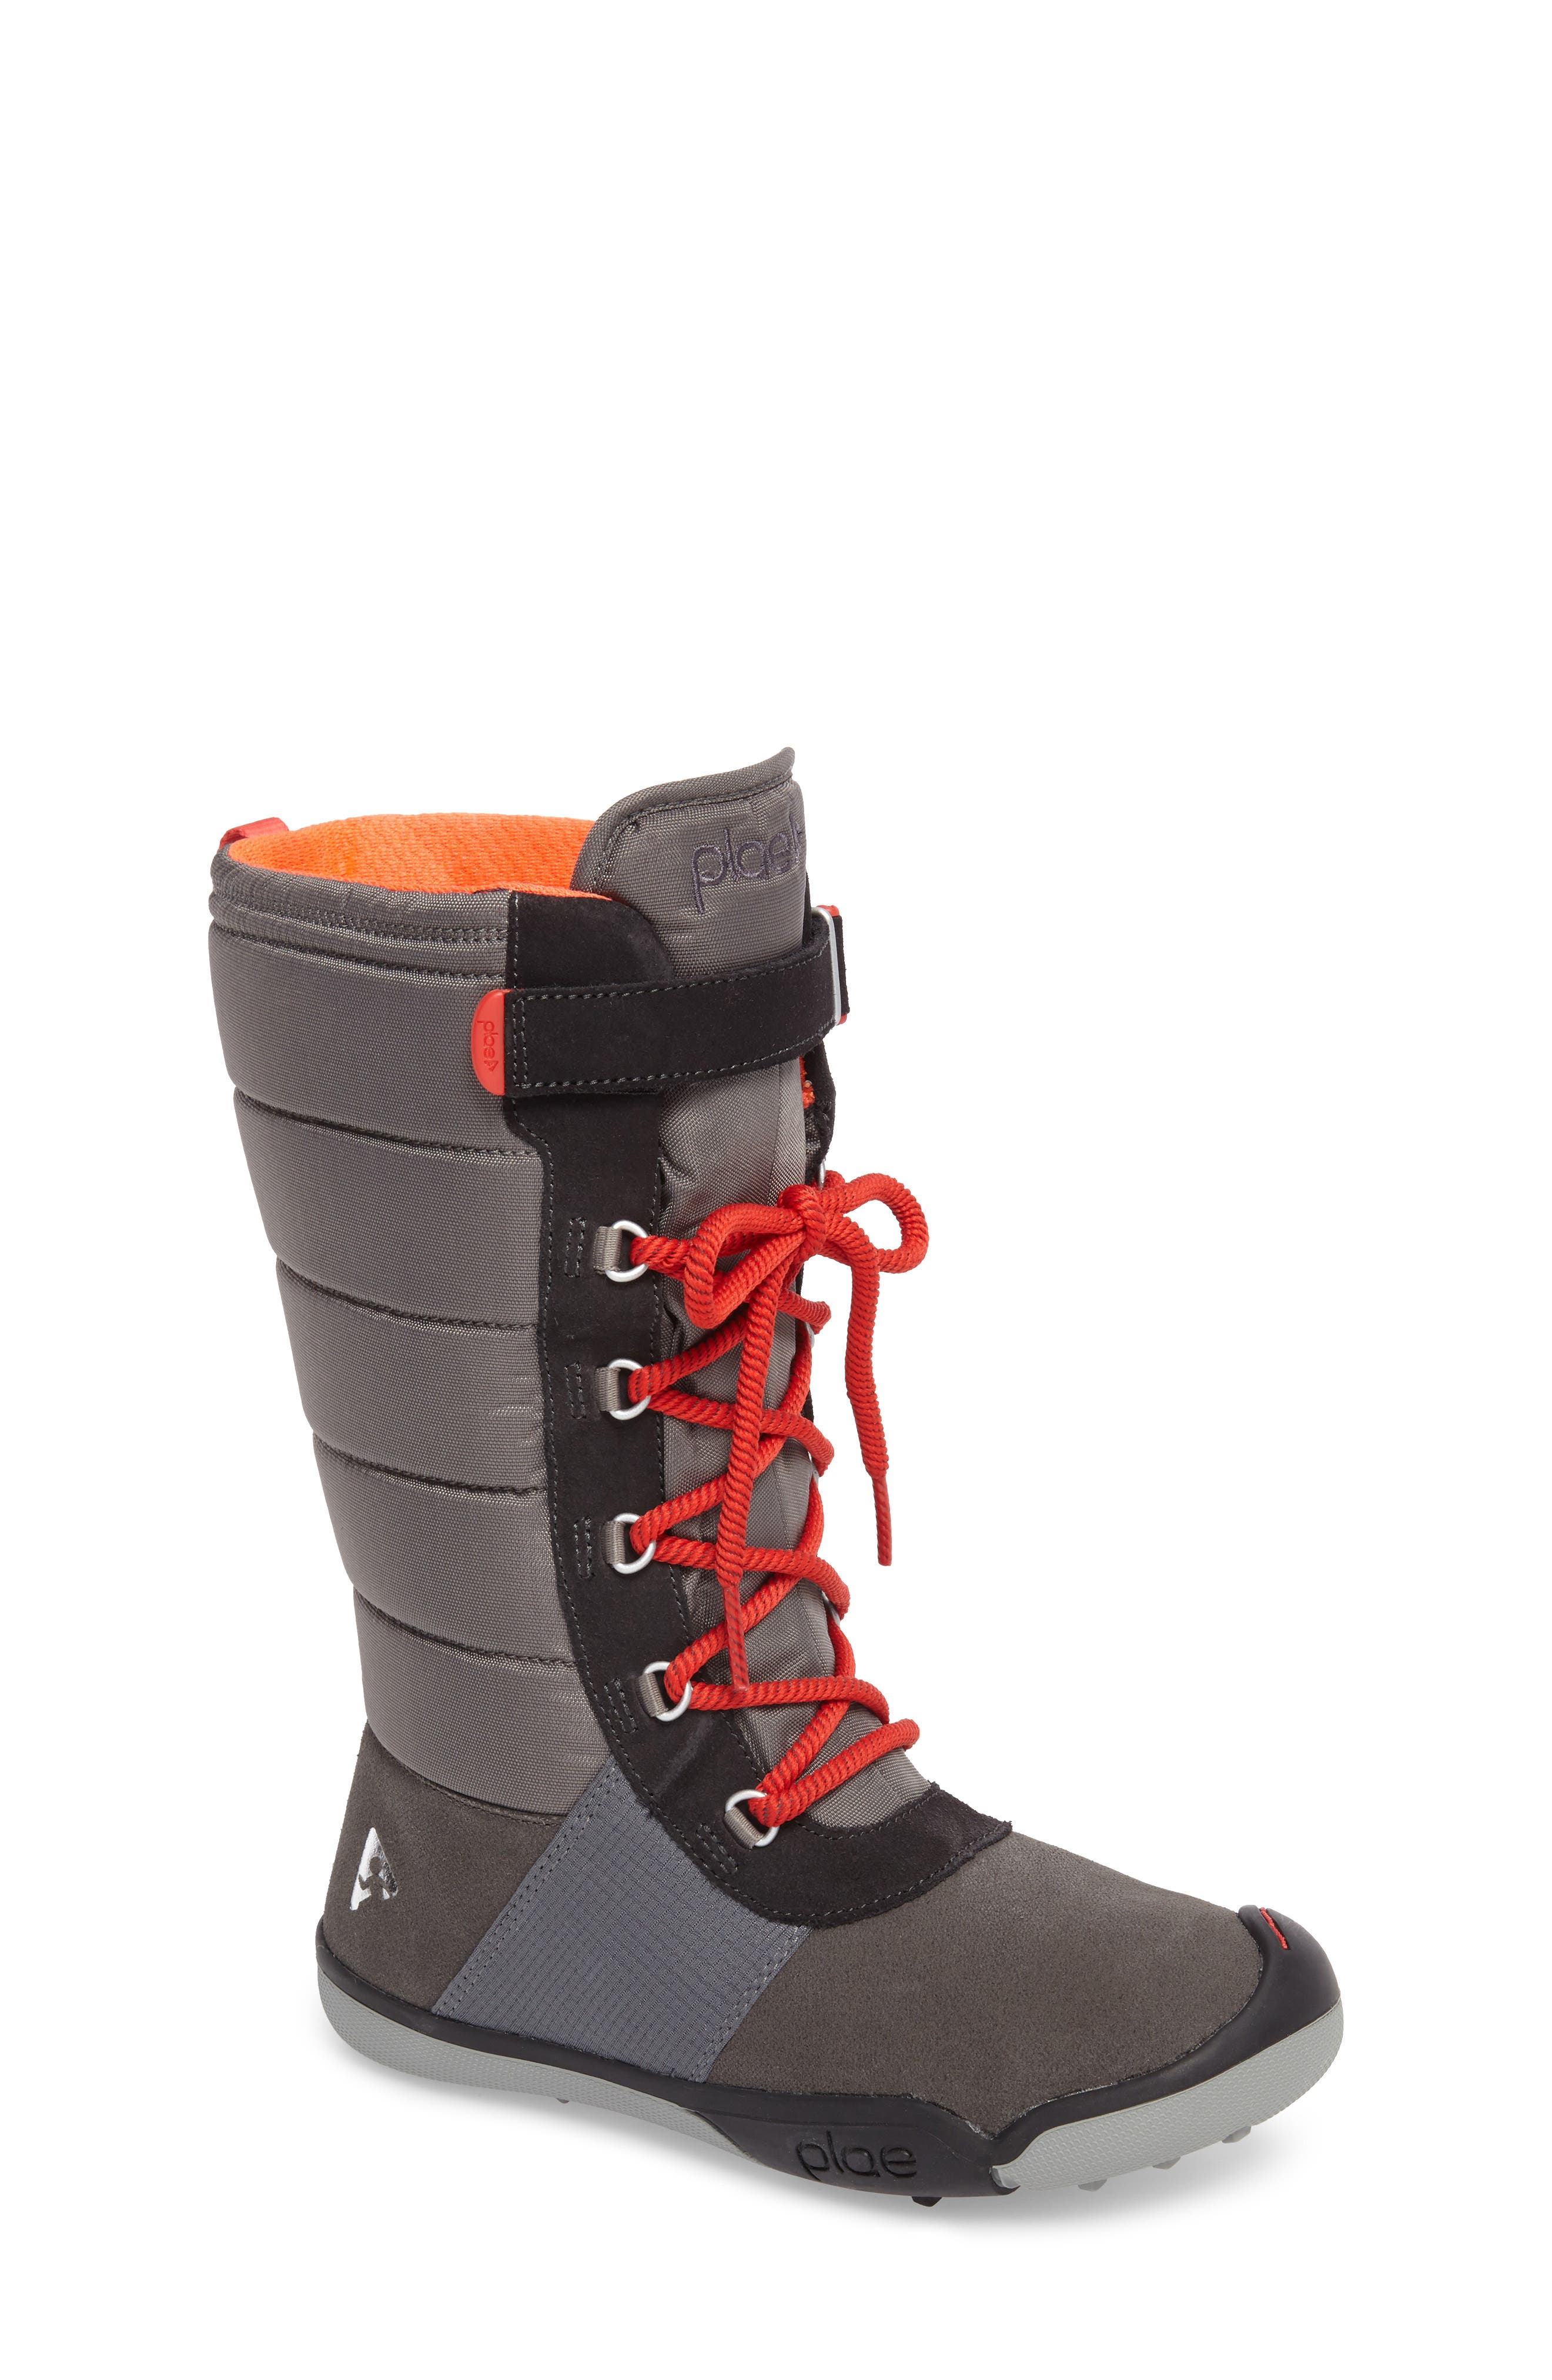 Main Image - PLAE Jack Customizable Waterproof Boot (Toddler & Little Kid)